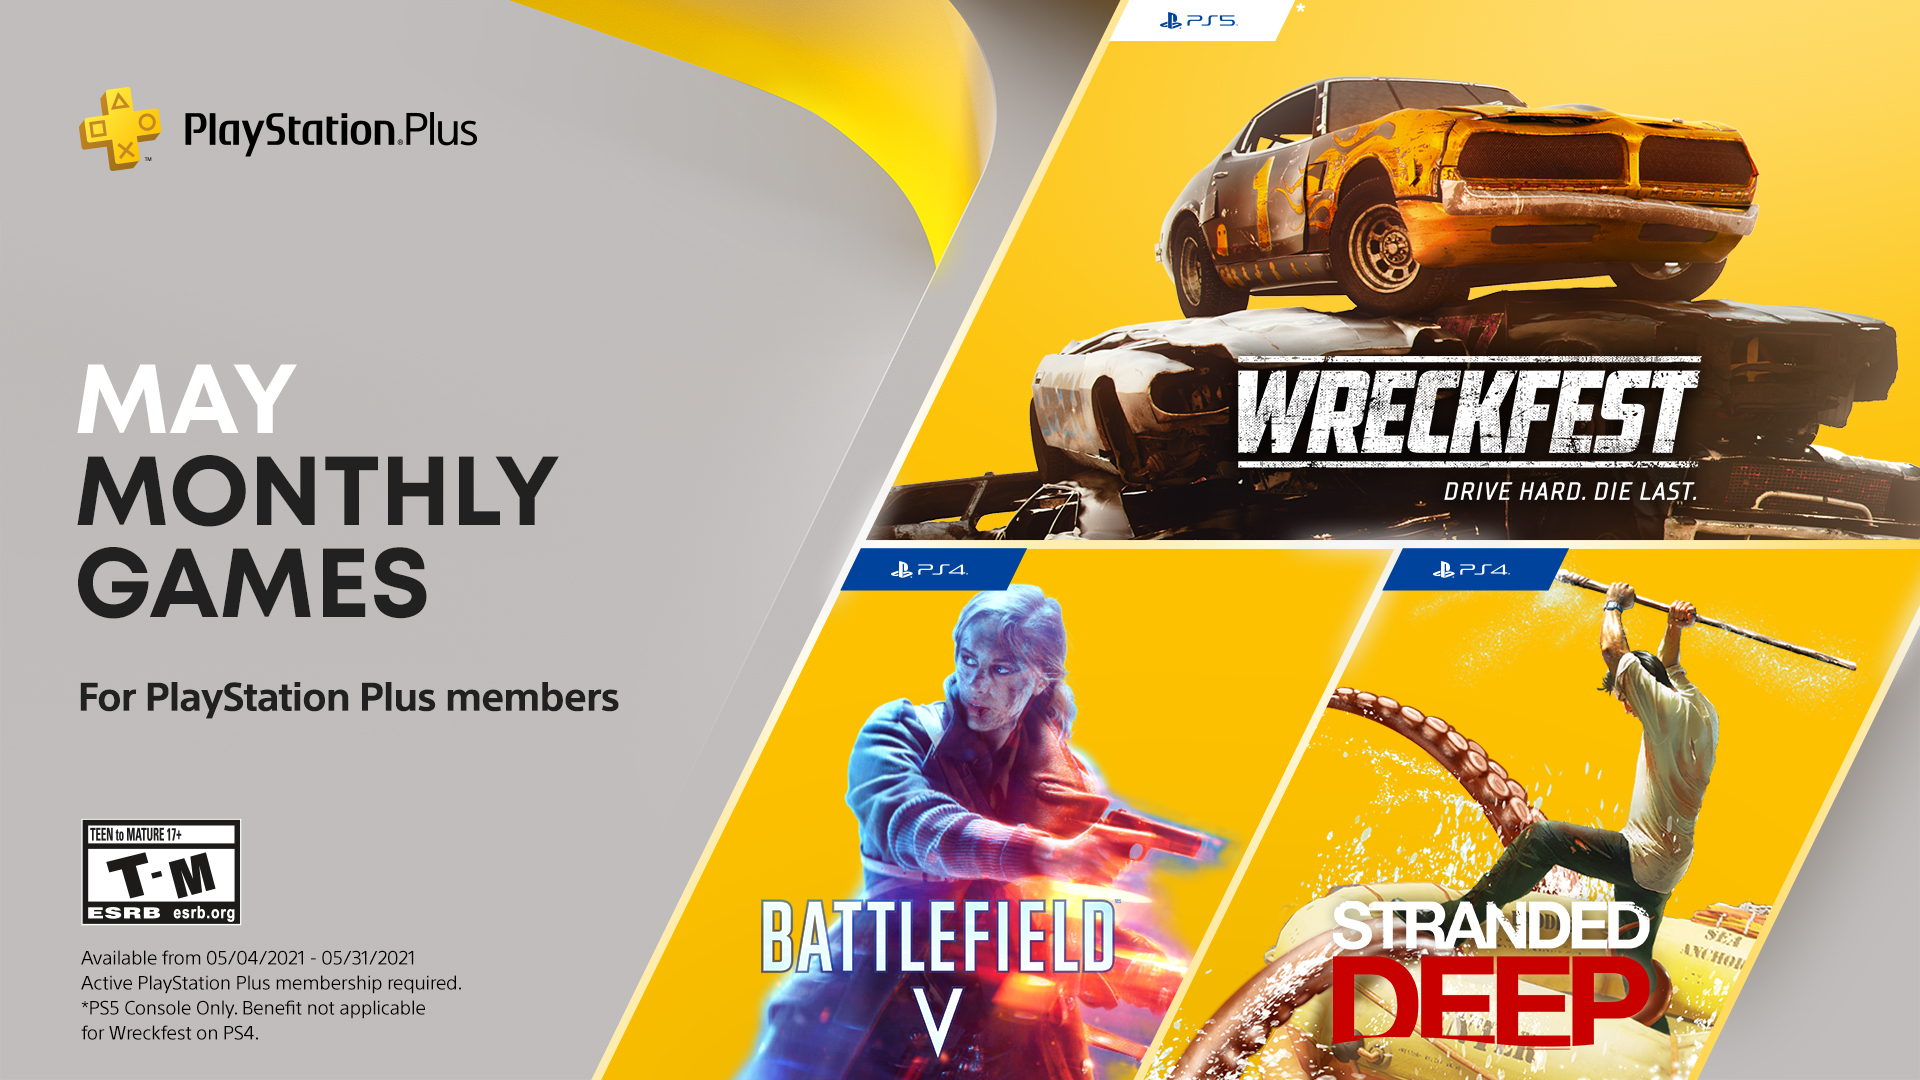 PS Plus Free Games May 2021